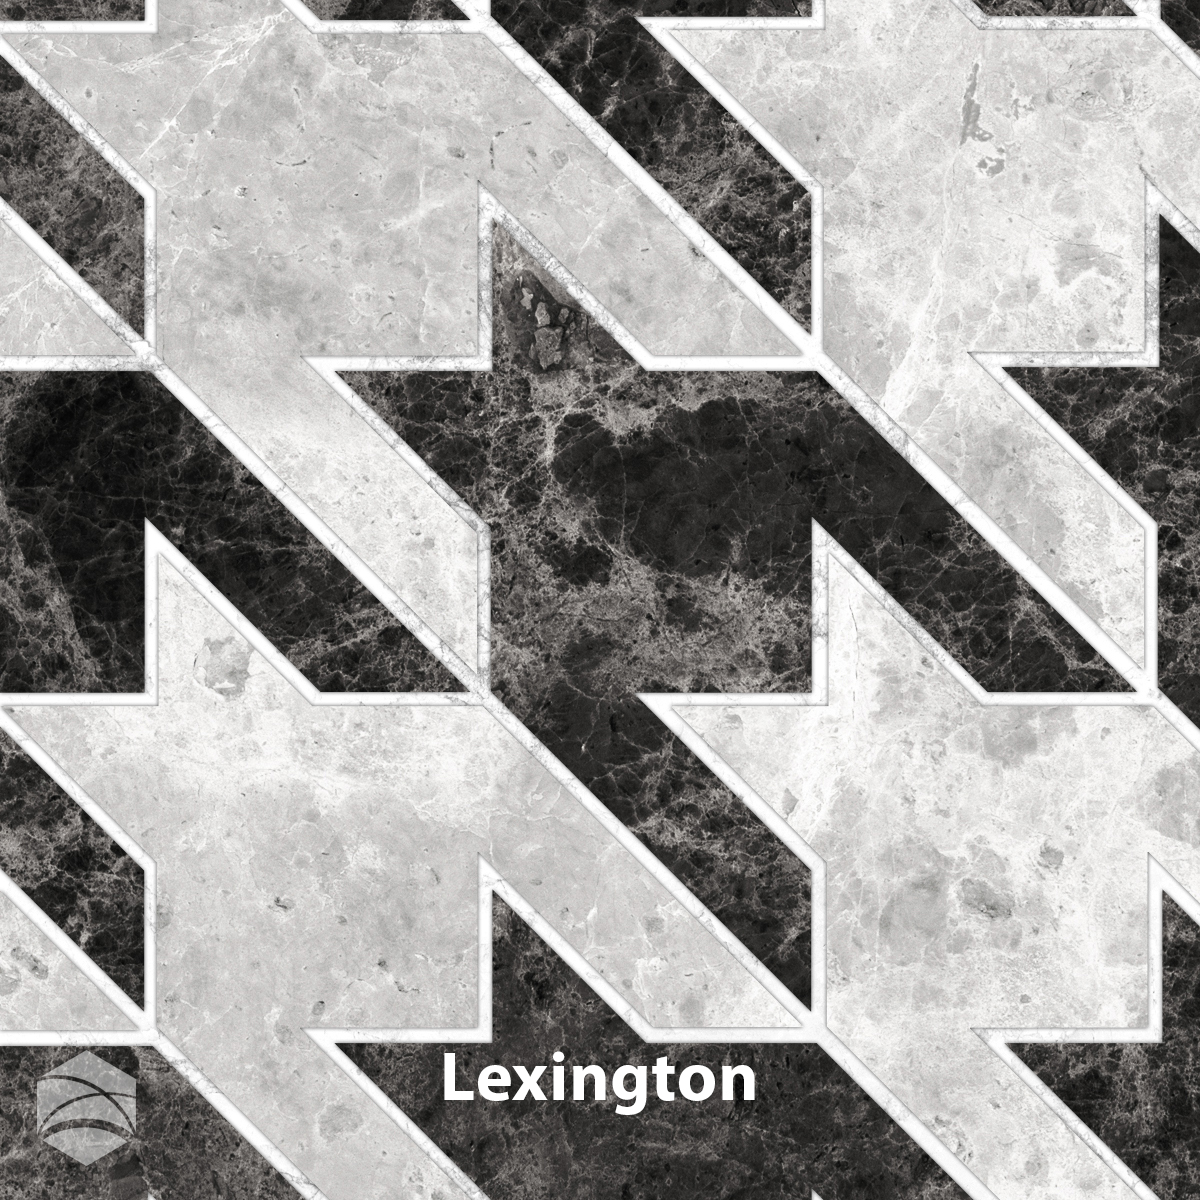 Lexington_V2_12x12.jpg